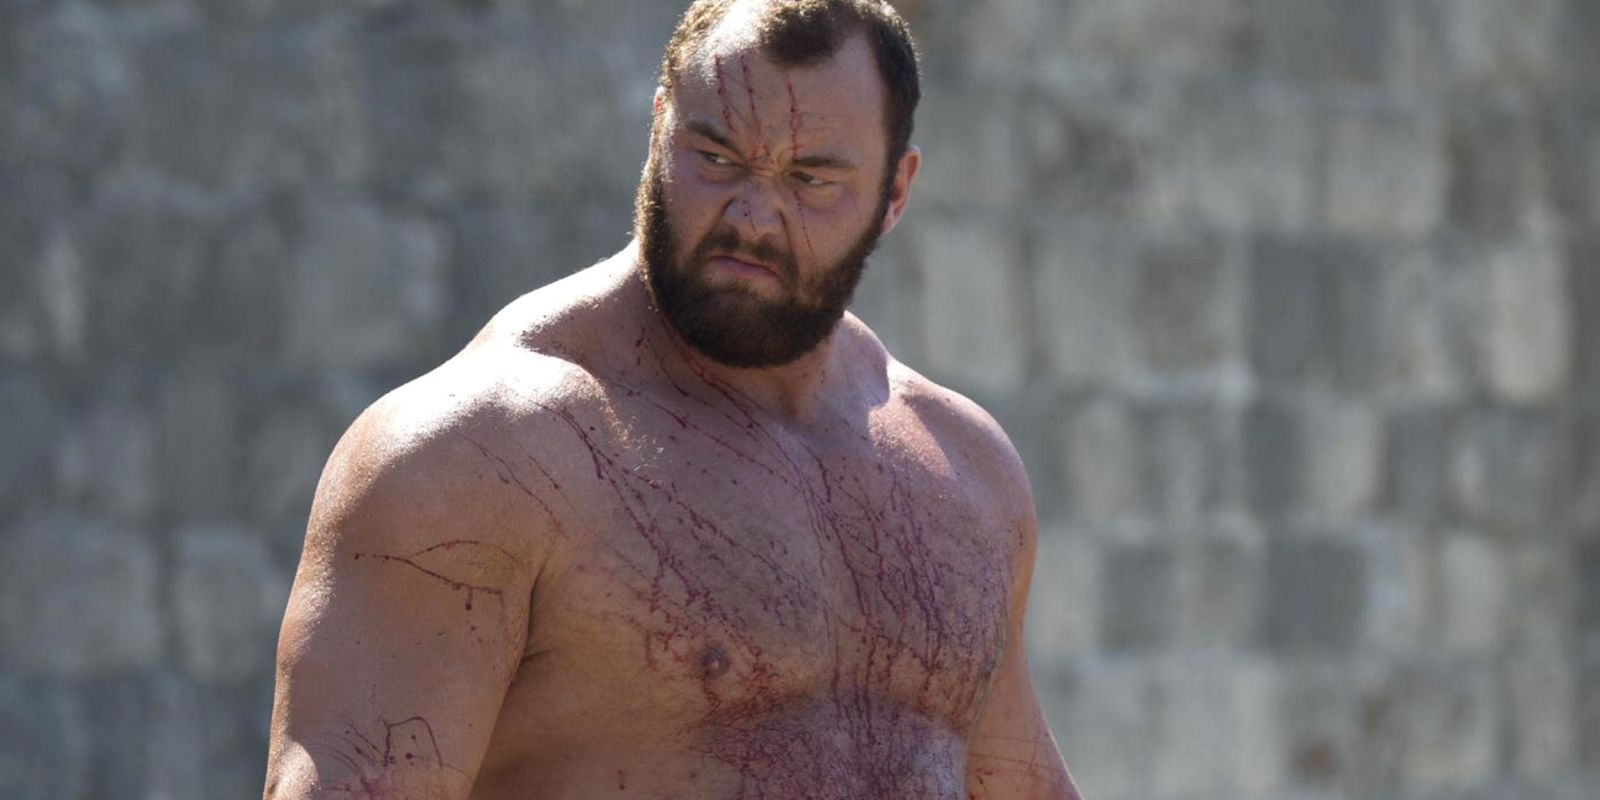 Watch Game Of Thrones' The Mountain try to set a world record in washing machine throwing